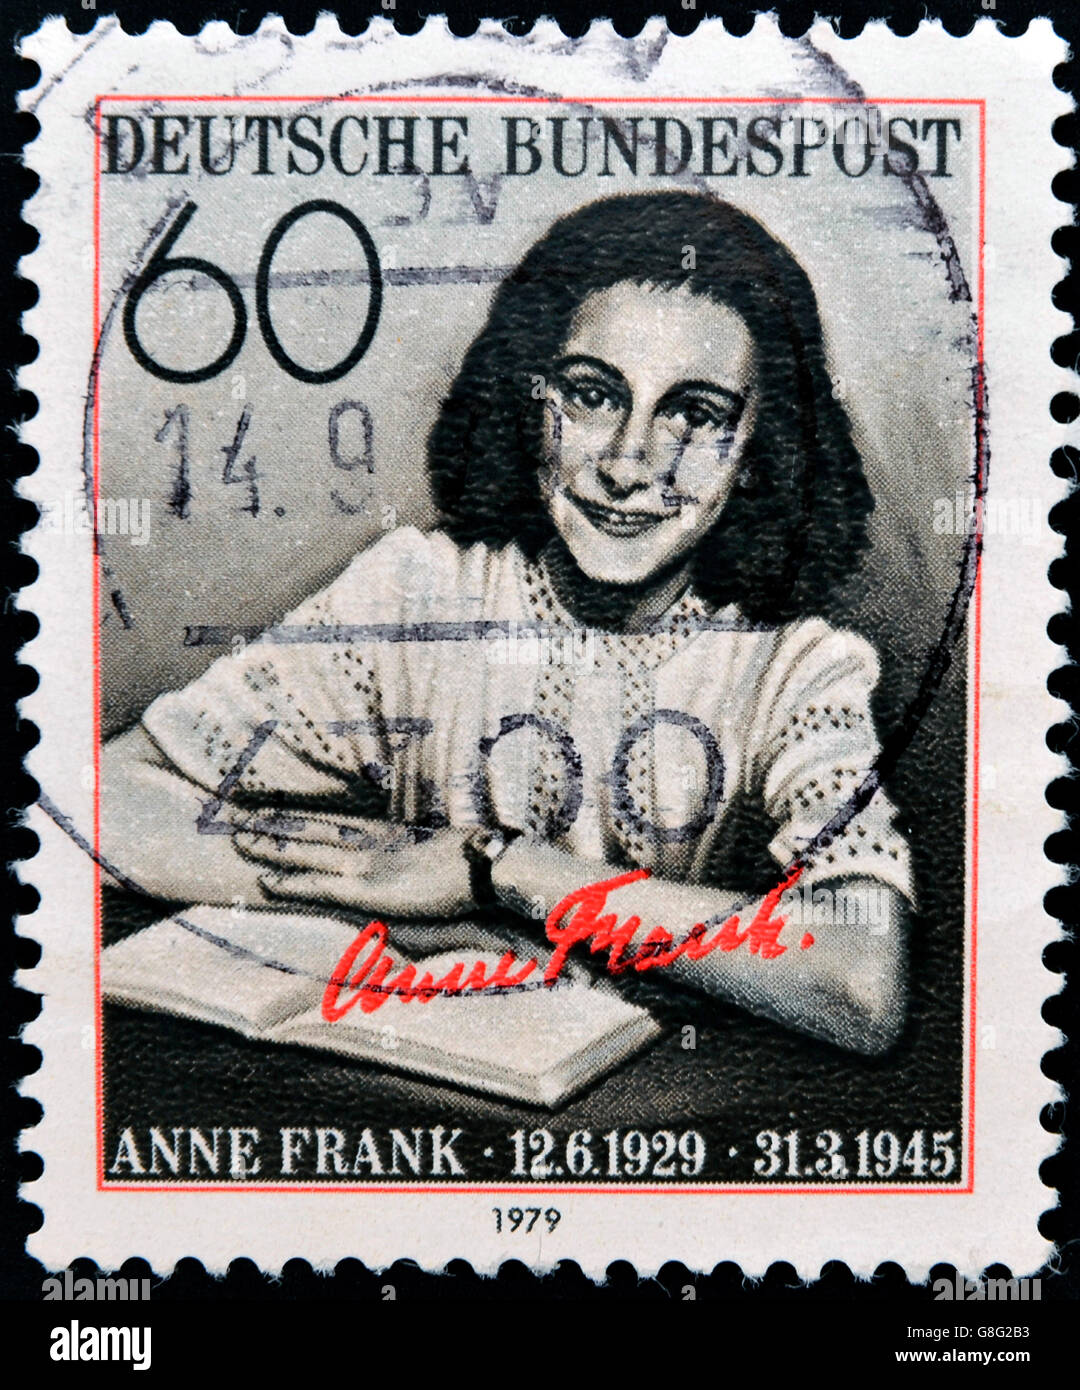 GERMANY CIRCA 1979: postage stamp printed in Germany shows an image of Anne Frank, circa 1979. Stock Photo